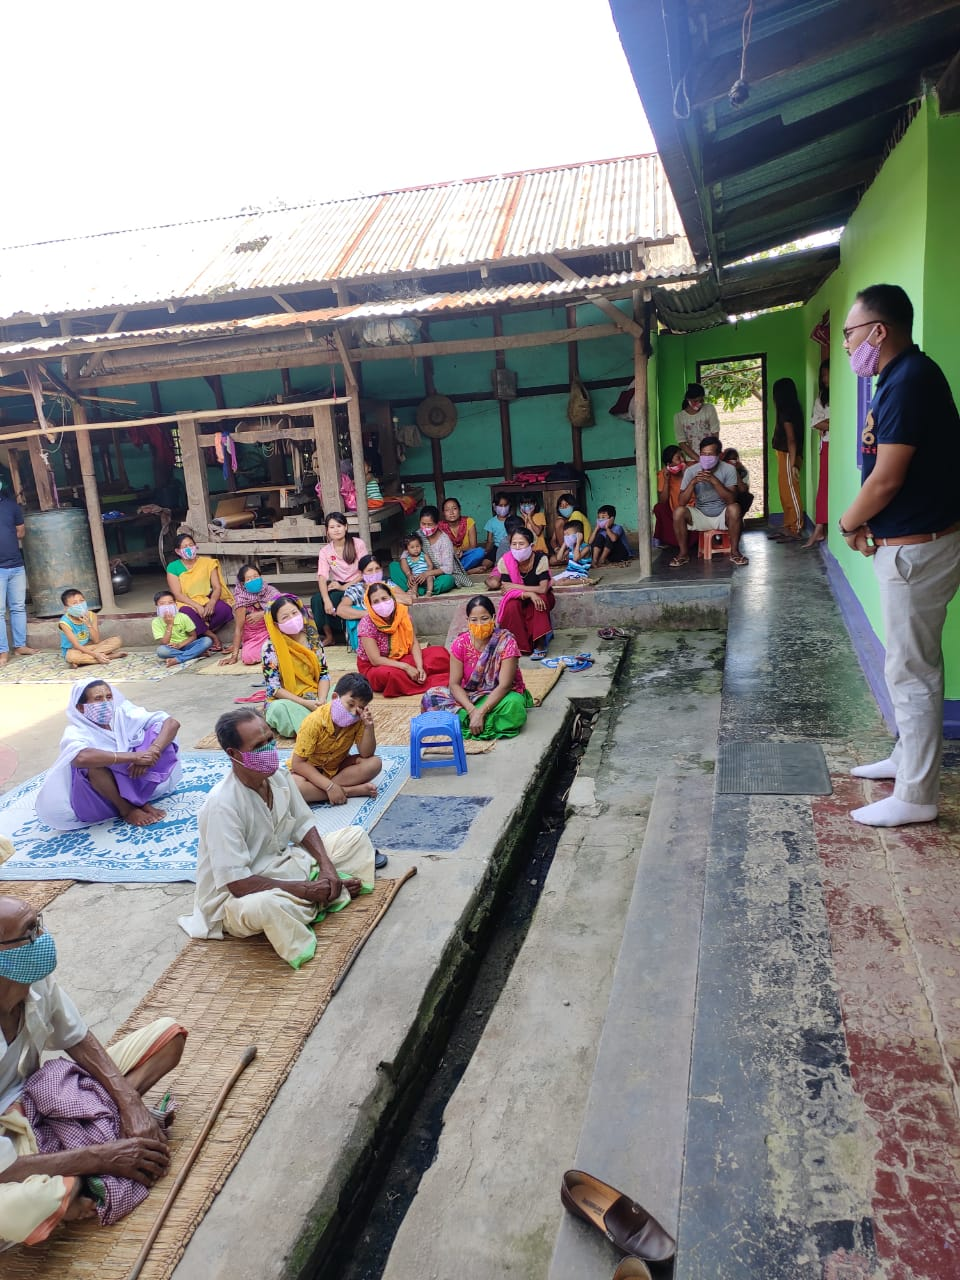 S.Mexico Singh, Research Scholar (Parasitology) delivering a lecture on Zoonotic disease at  Pechi makha leikai.